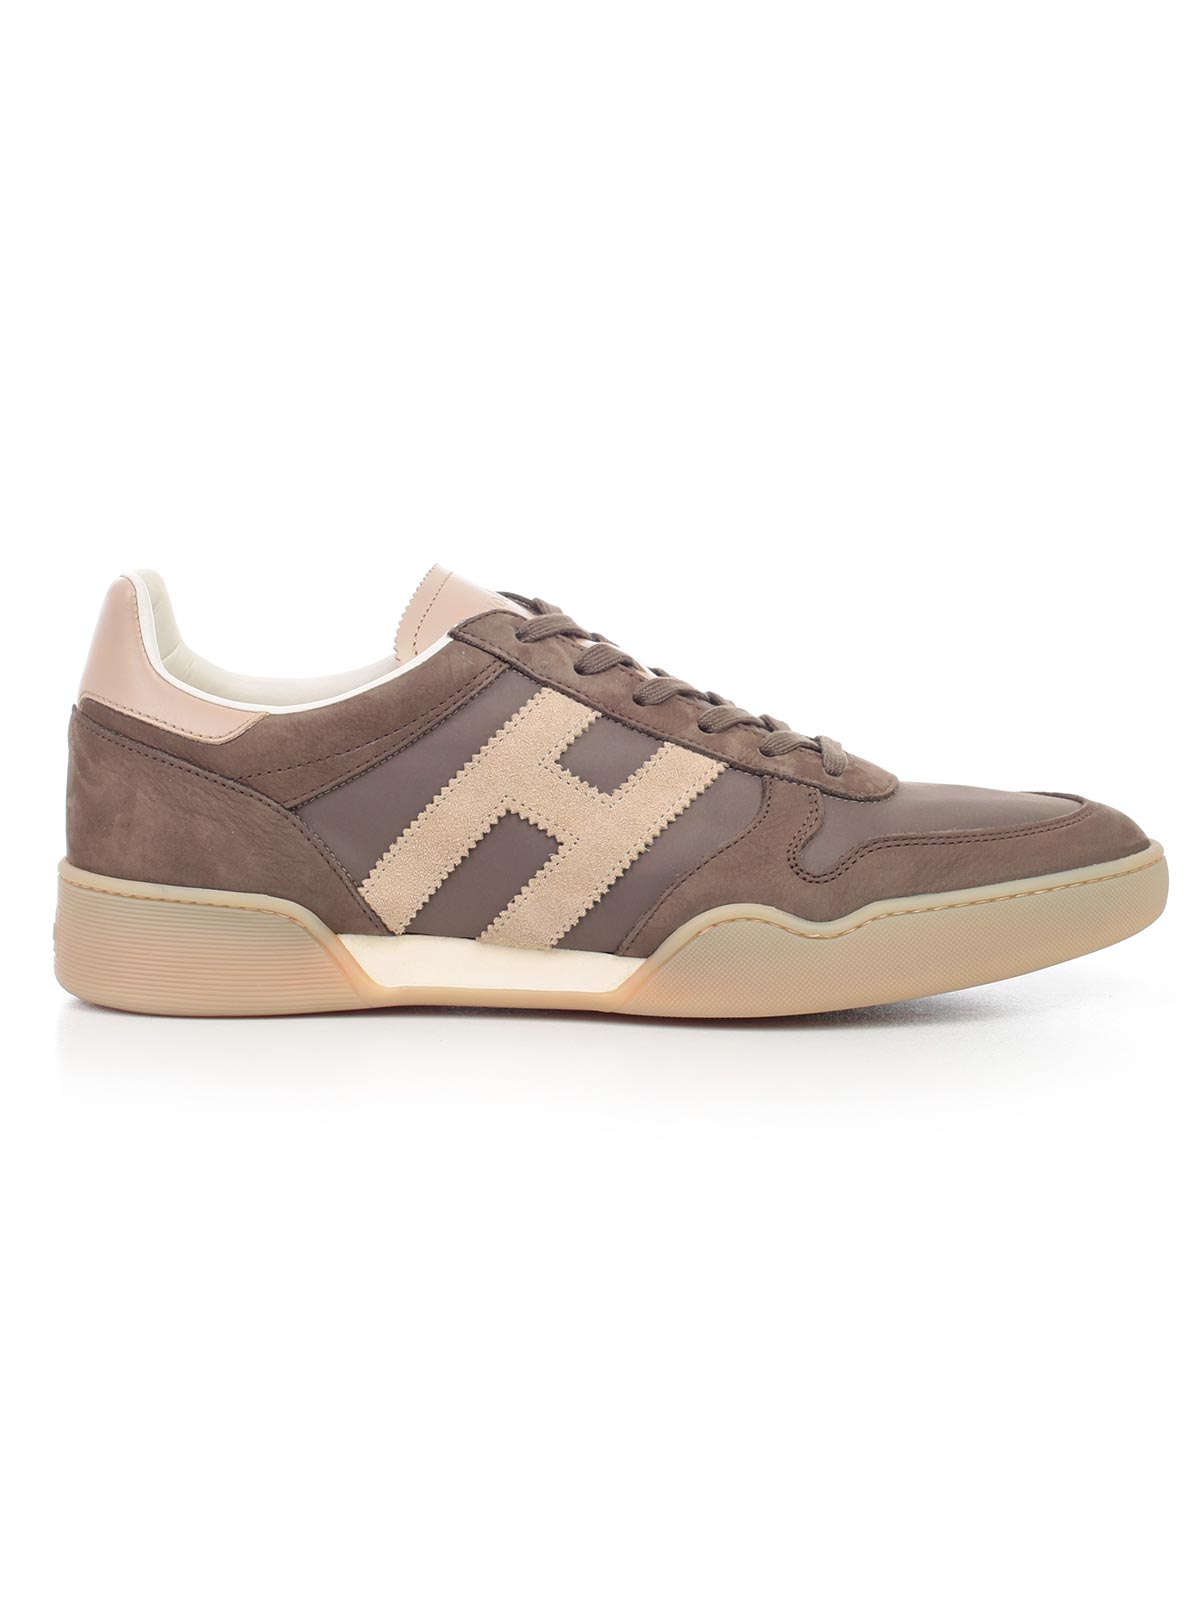 Picture of Hogan Shoes